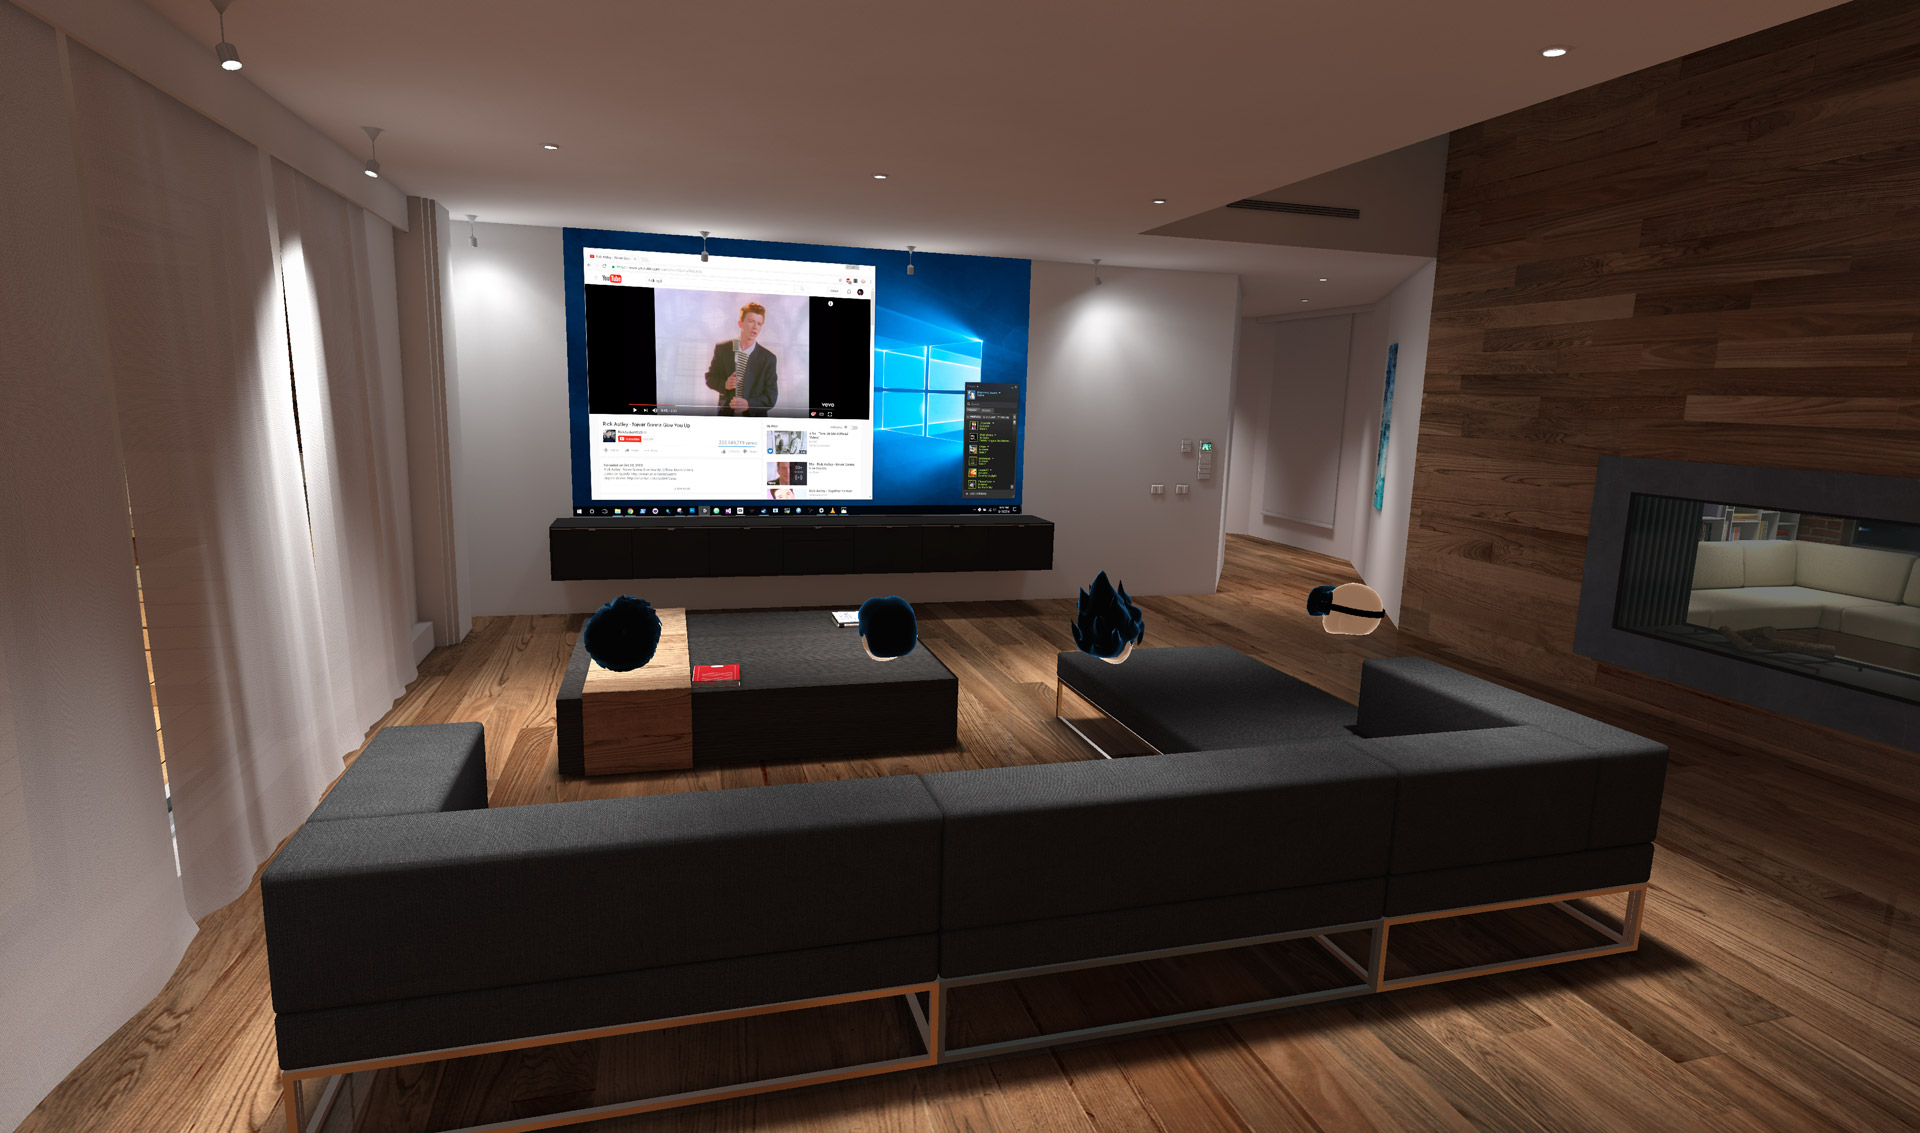 39 bigscreen 39 launches on oculus home update brings custom for Vr house